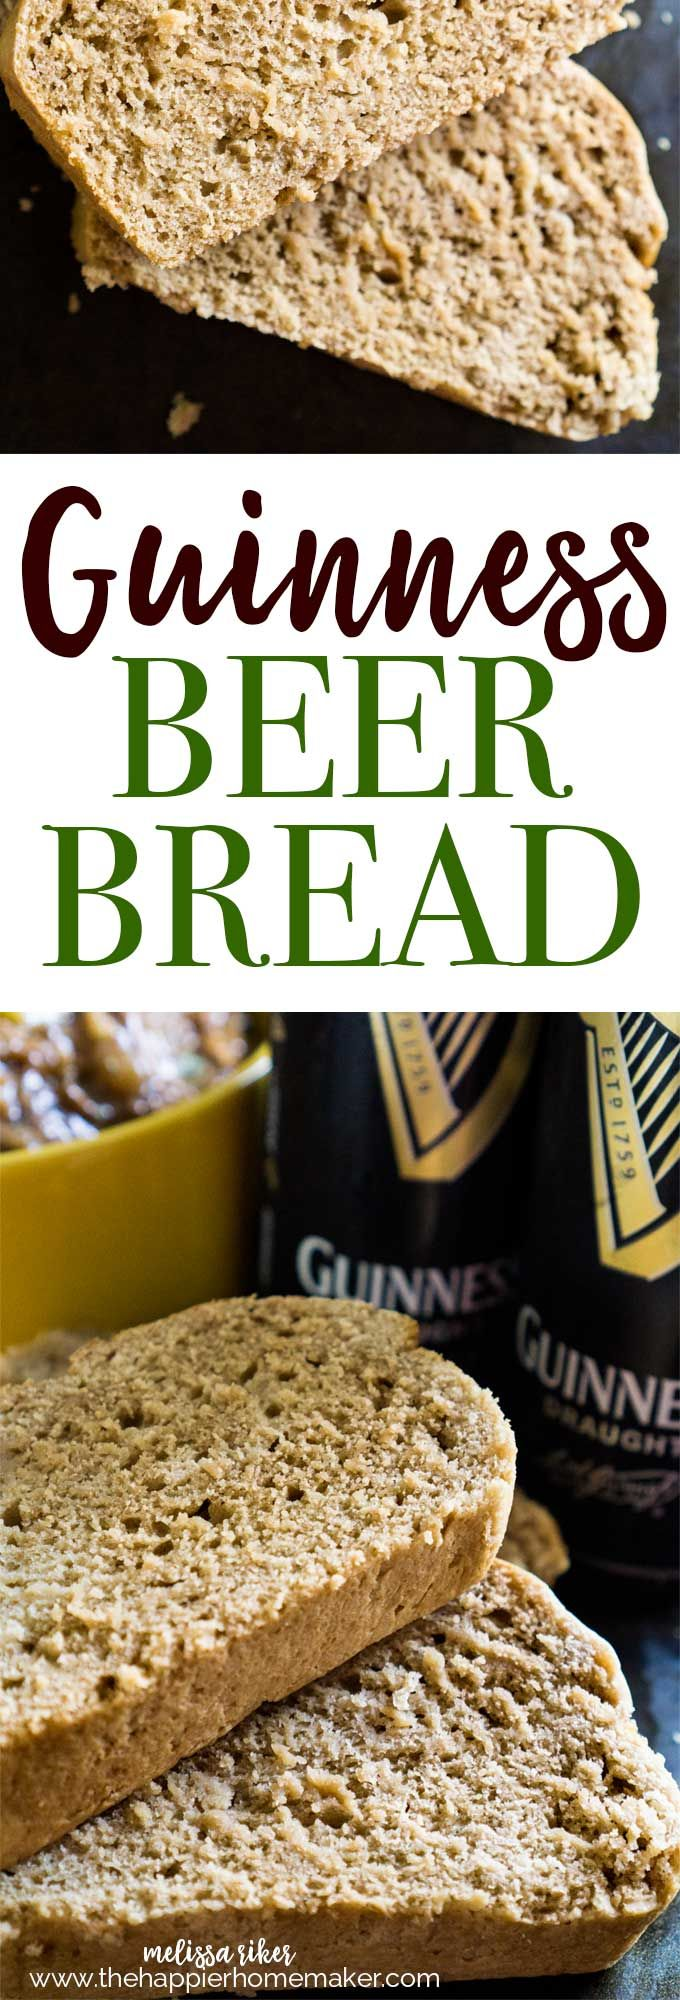 Easy Guinness Beer Bread has just three ingredients and a rich, sweet flavor that only Guinness can give!